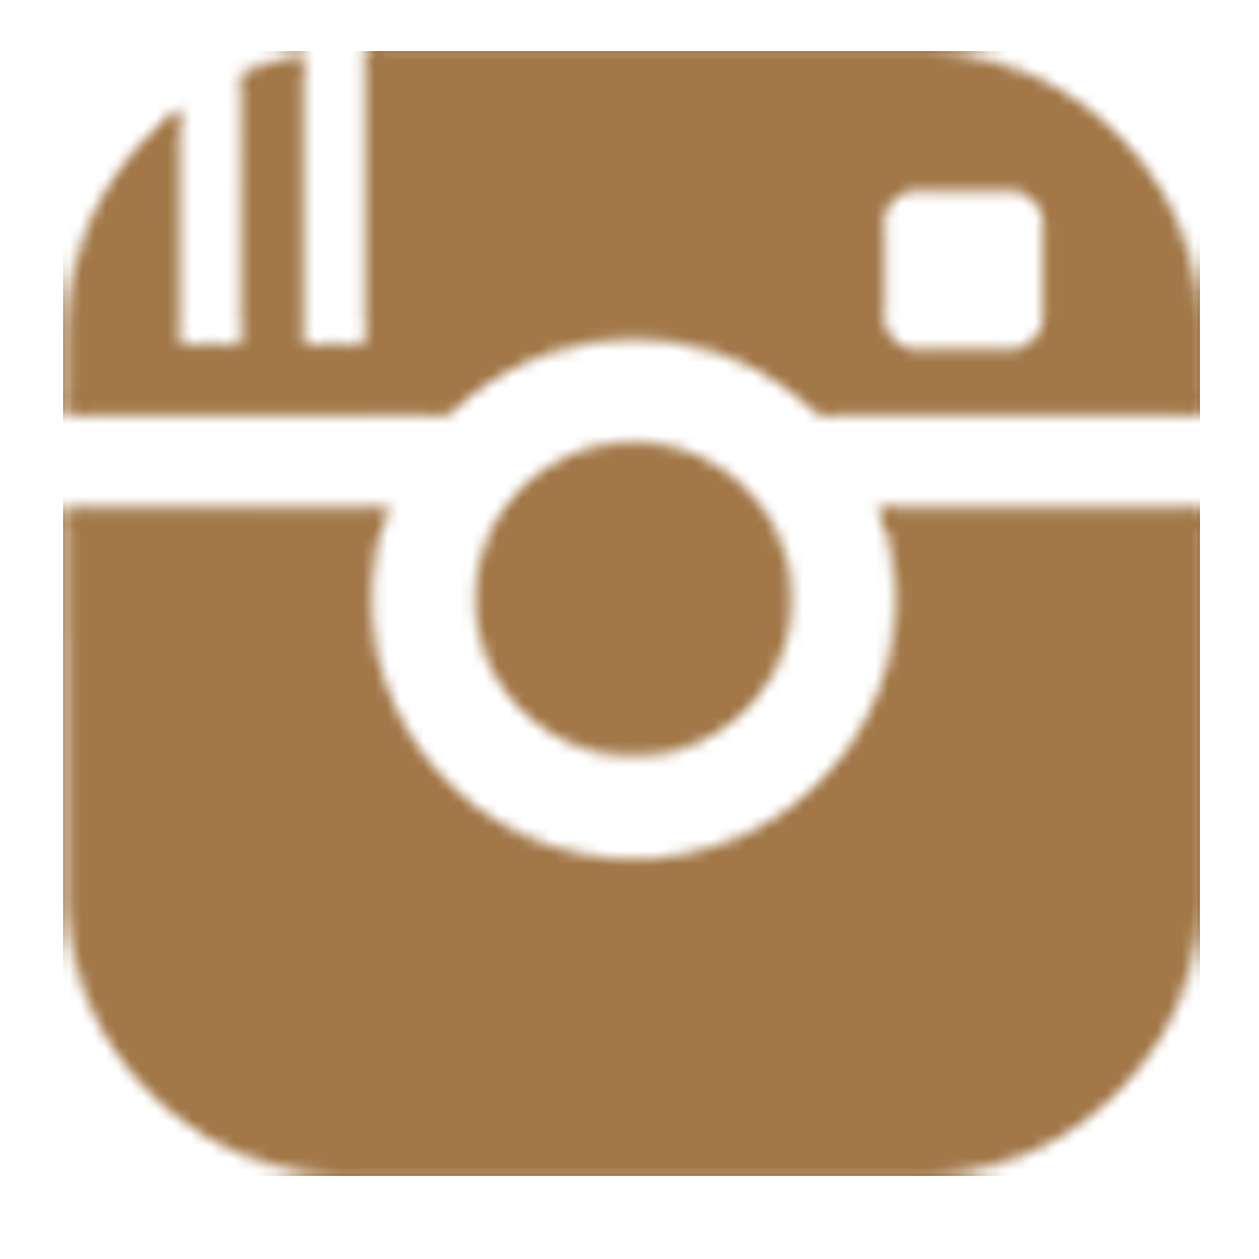 Graphic Instagram Icons Computer Design Logo PNG Image